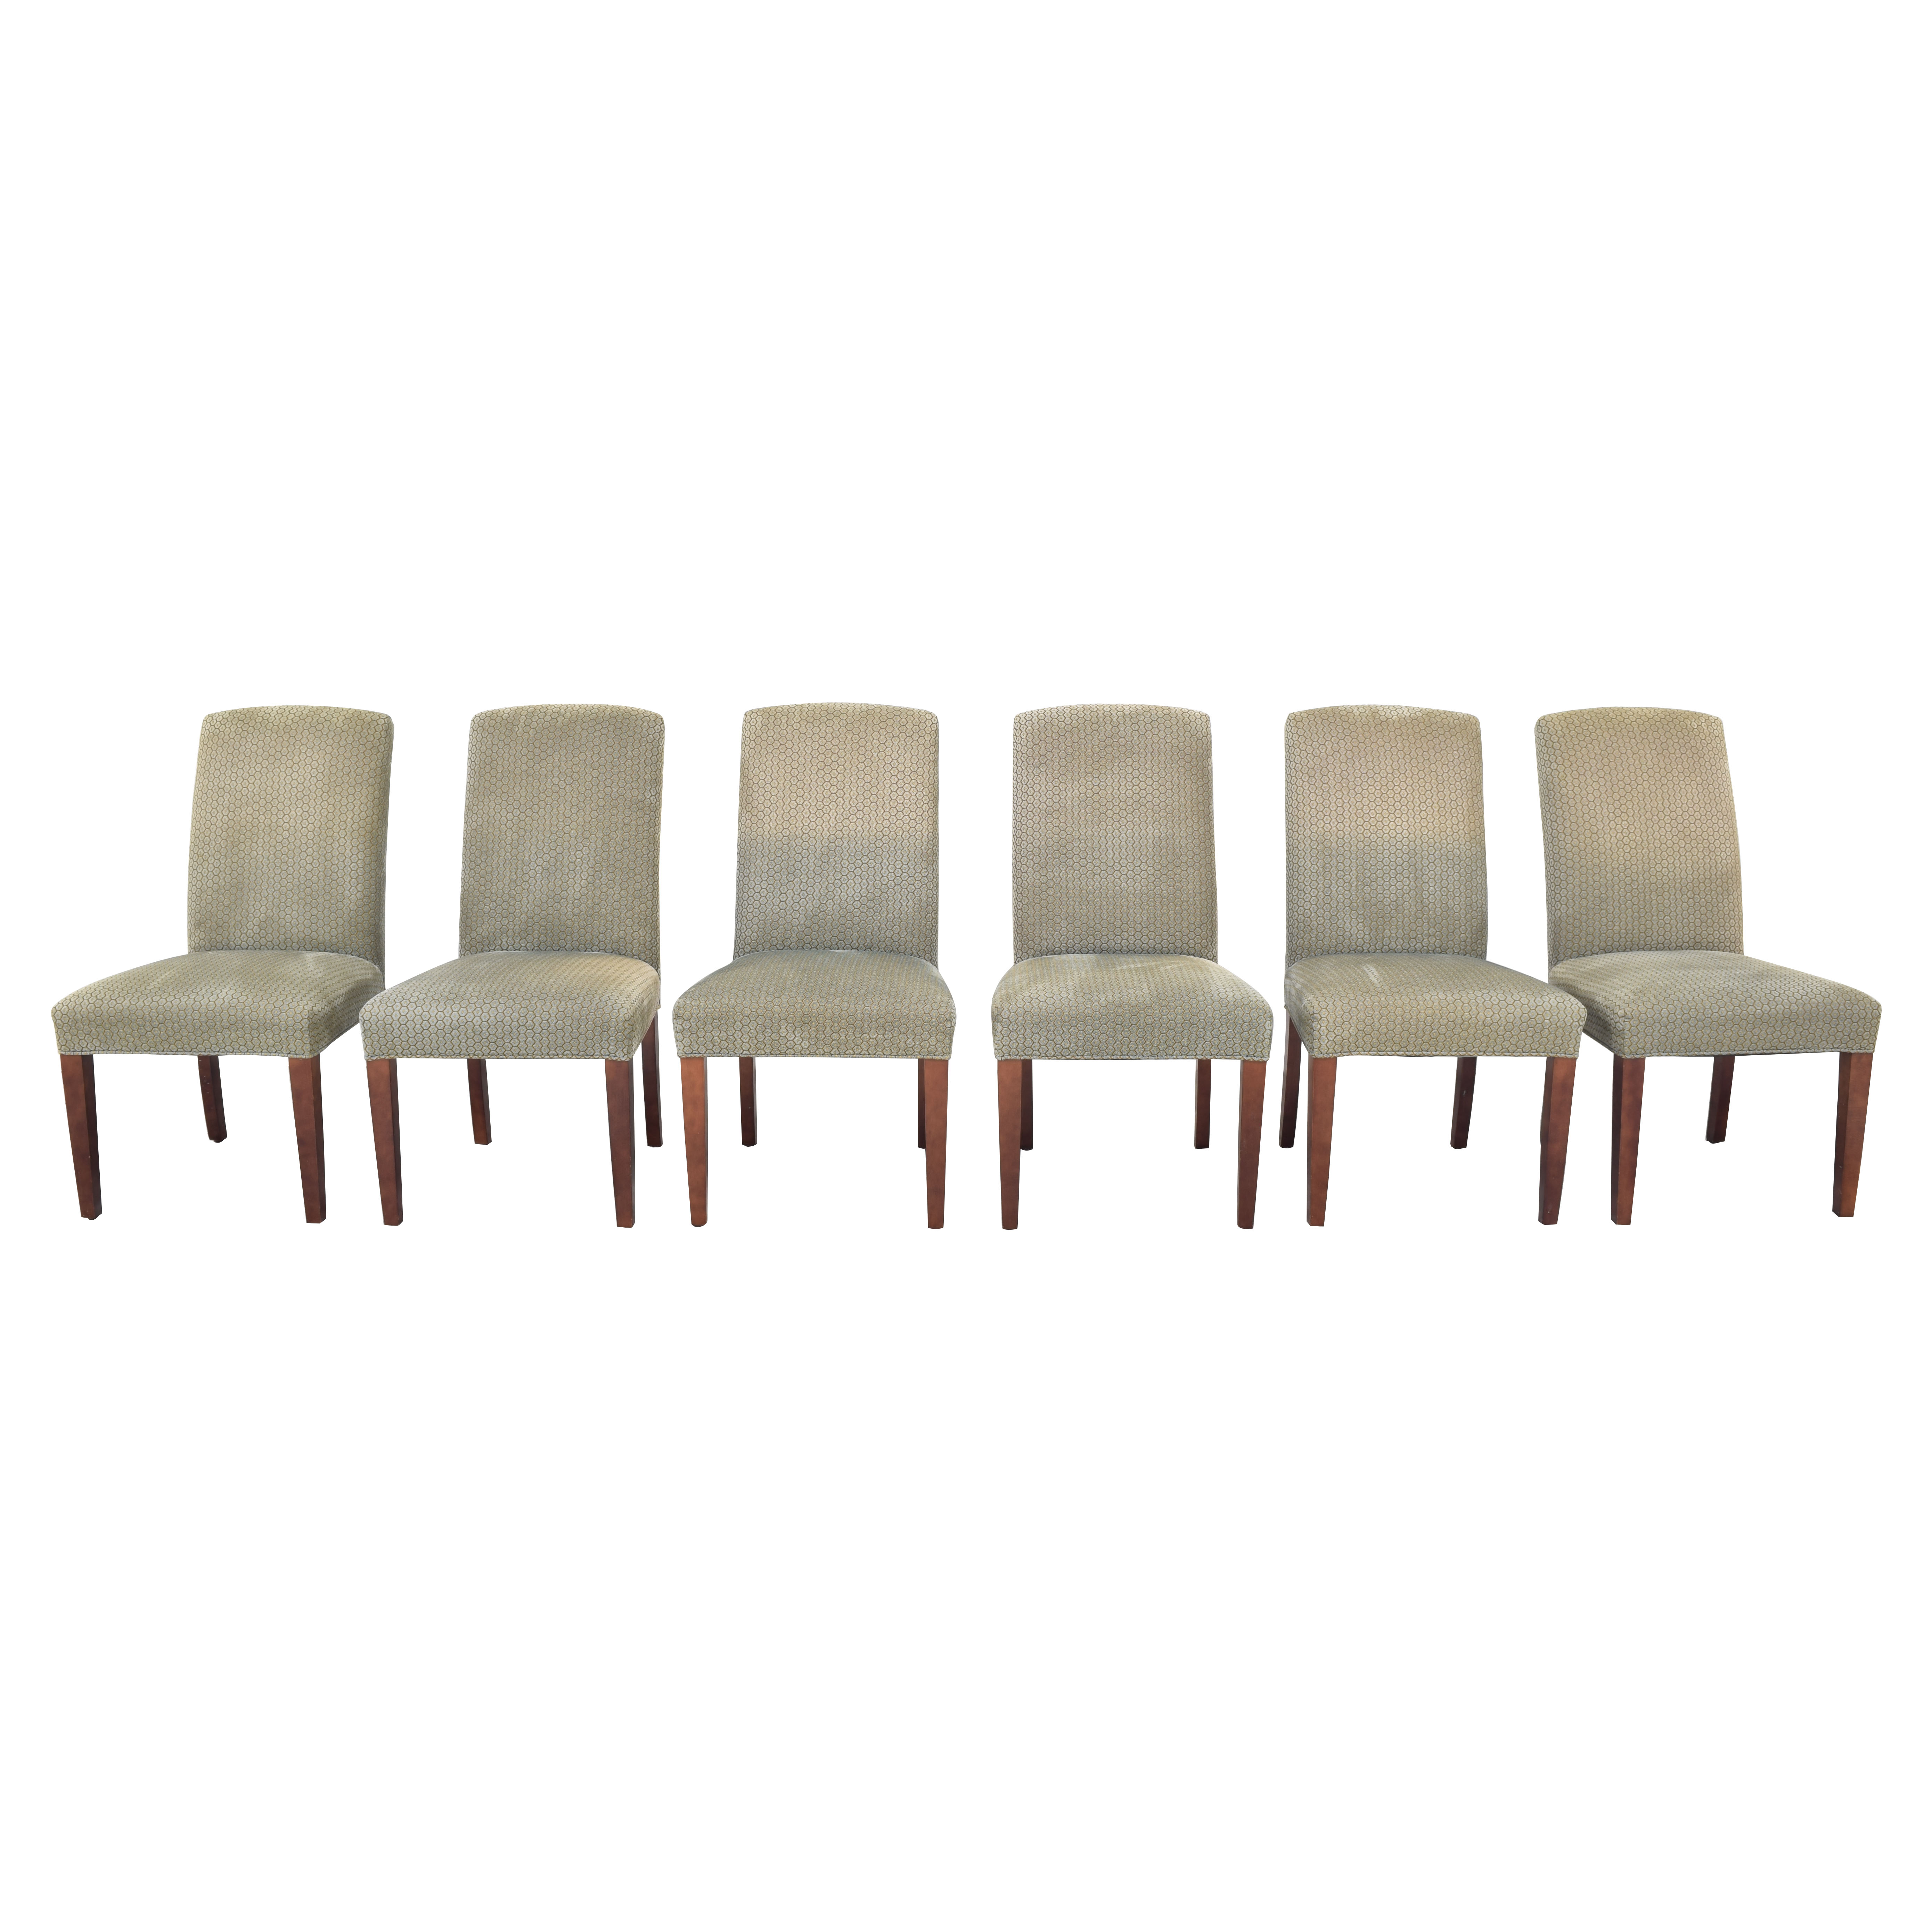 86 Off Crate Barrel Crate Barrel Dining Room Chairs Chairs